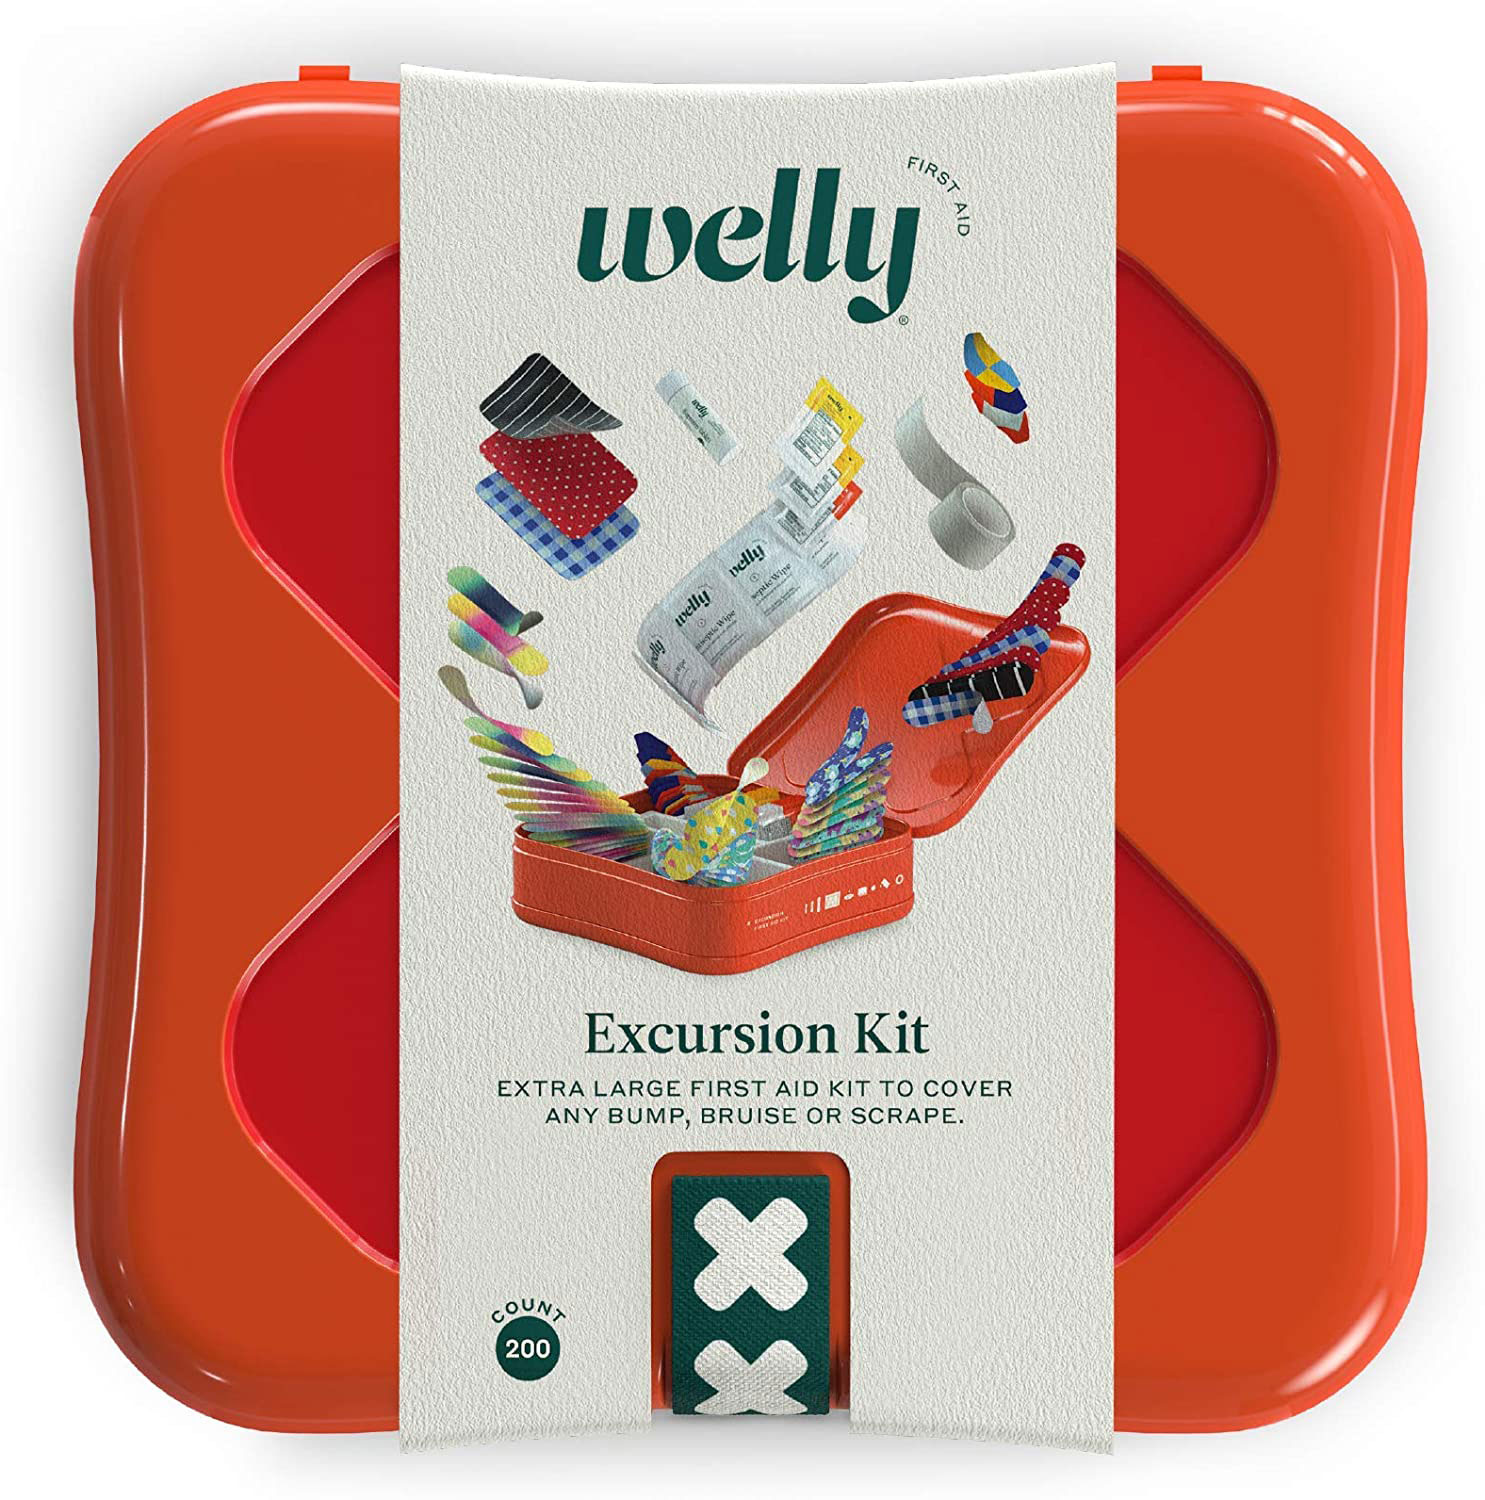 6 Clever Items (1/8/21) - Welly Excursion Kit